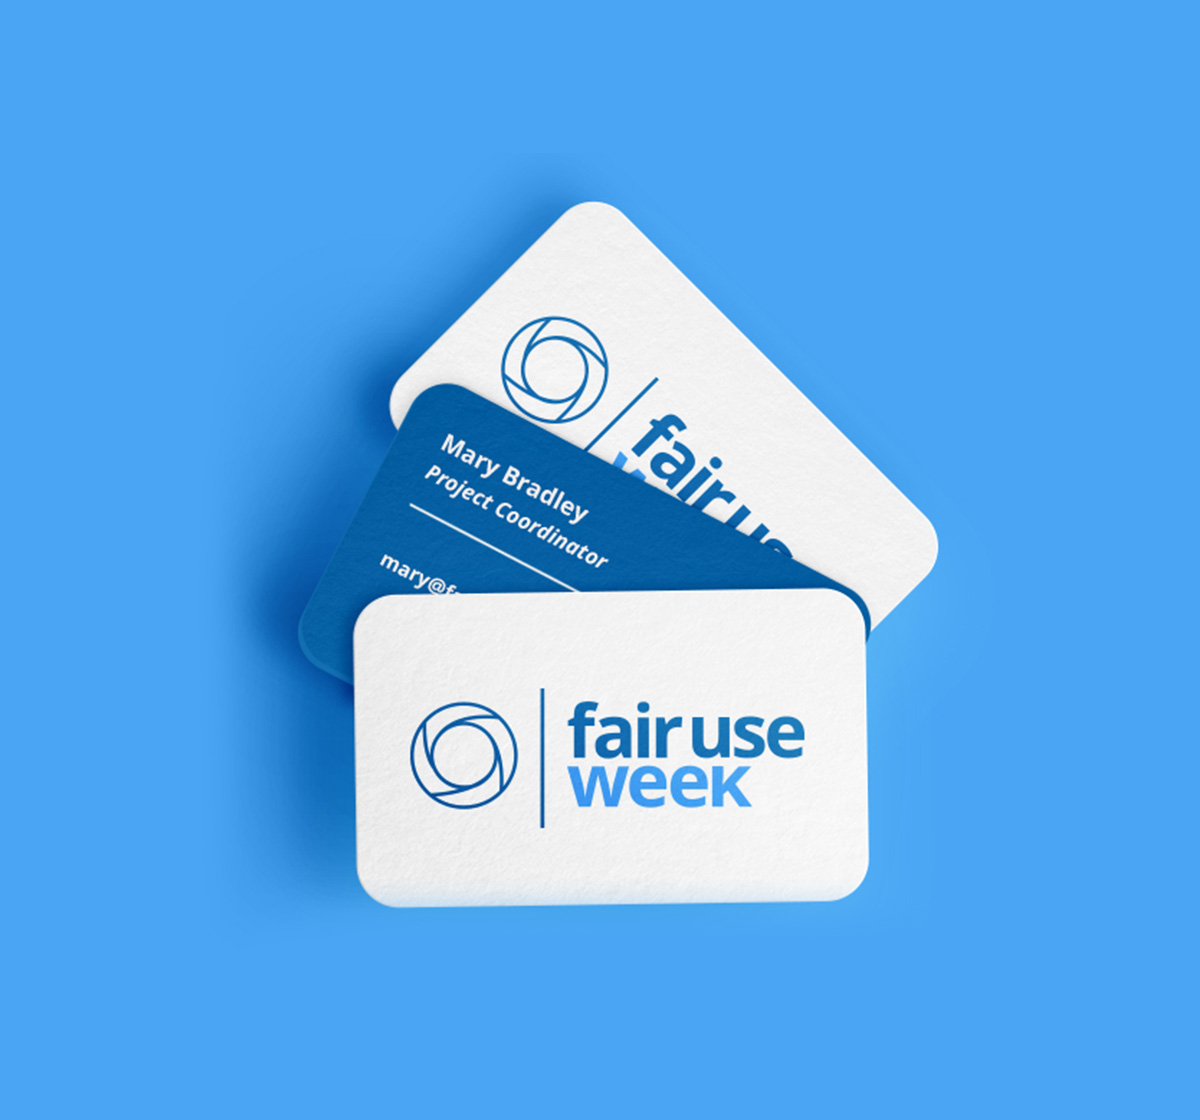 Fair Use Week Branding